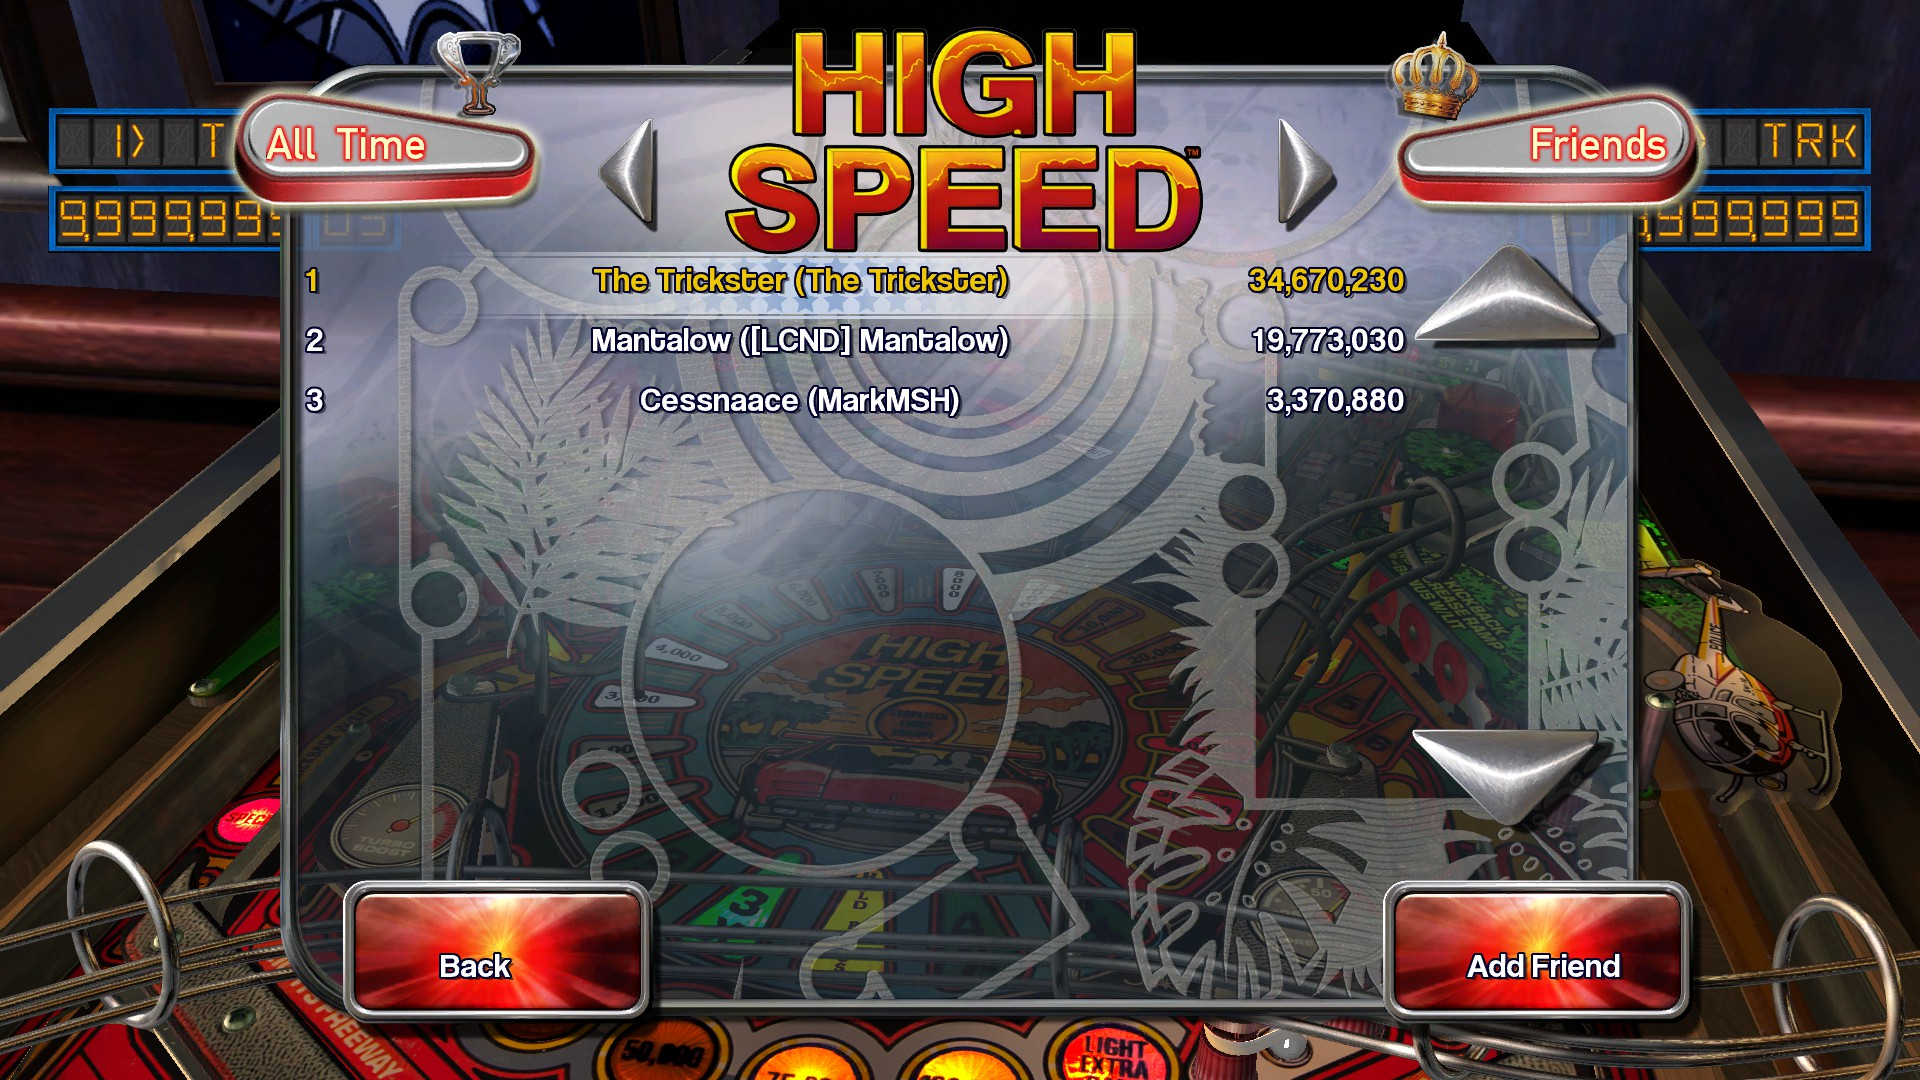 TheTrickster: Pinball Arcade: High Speed (PC) 34,670,230 points on 2016-02-25 06:22:31